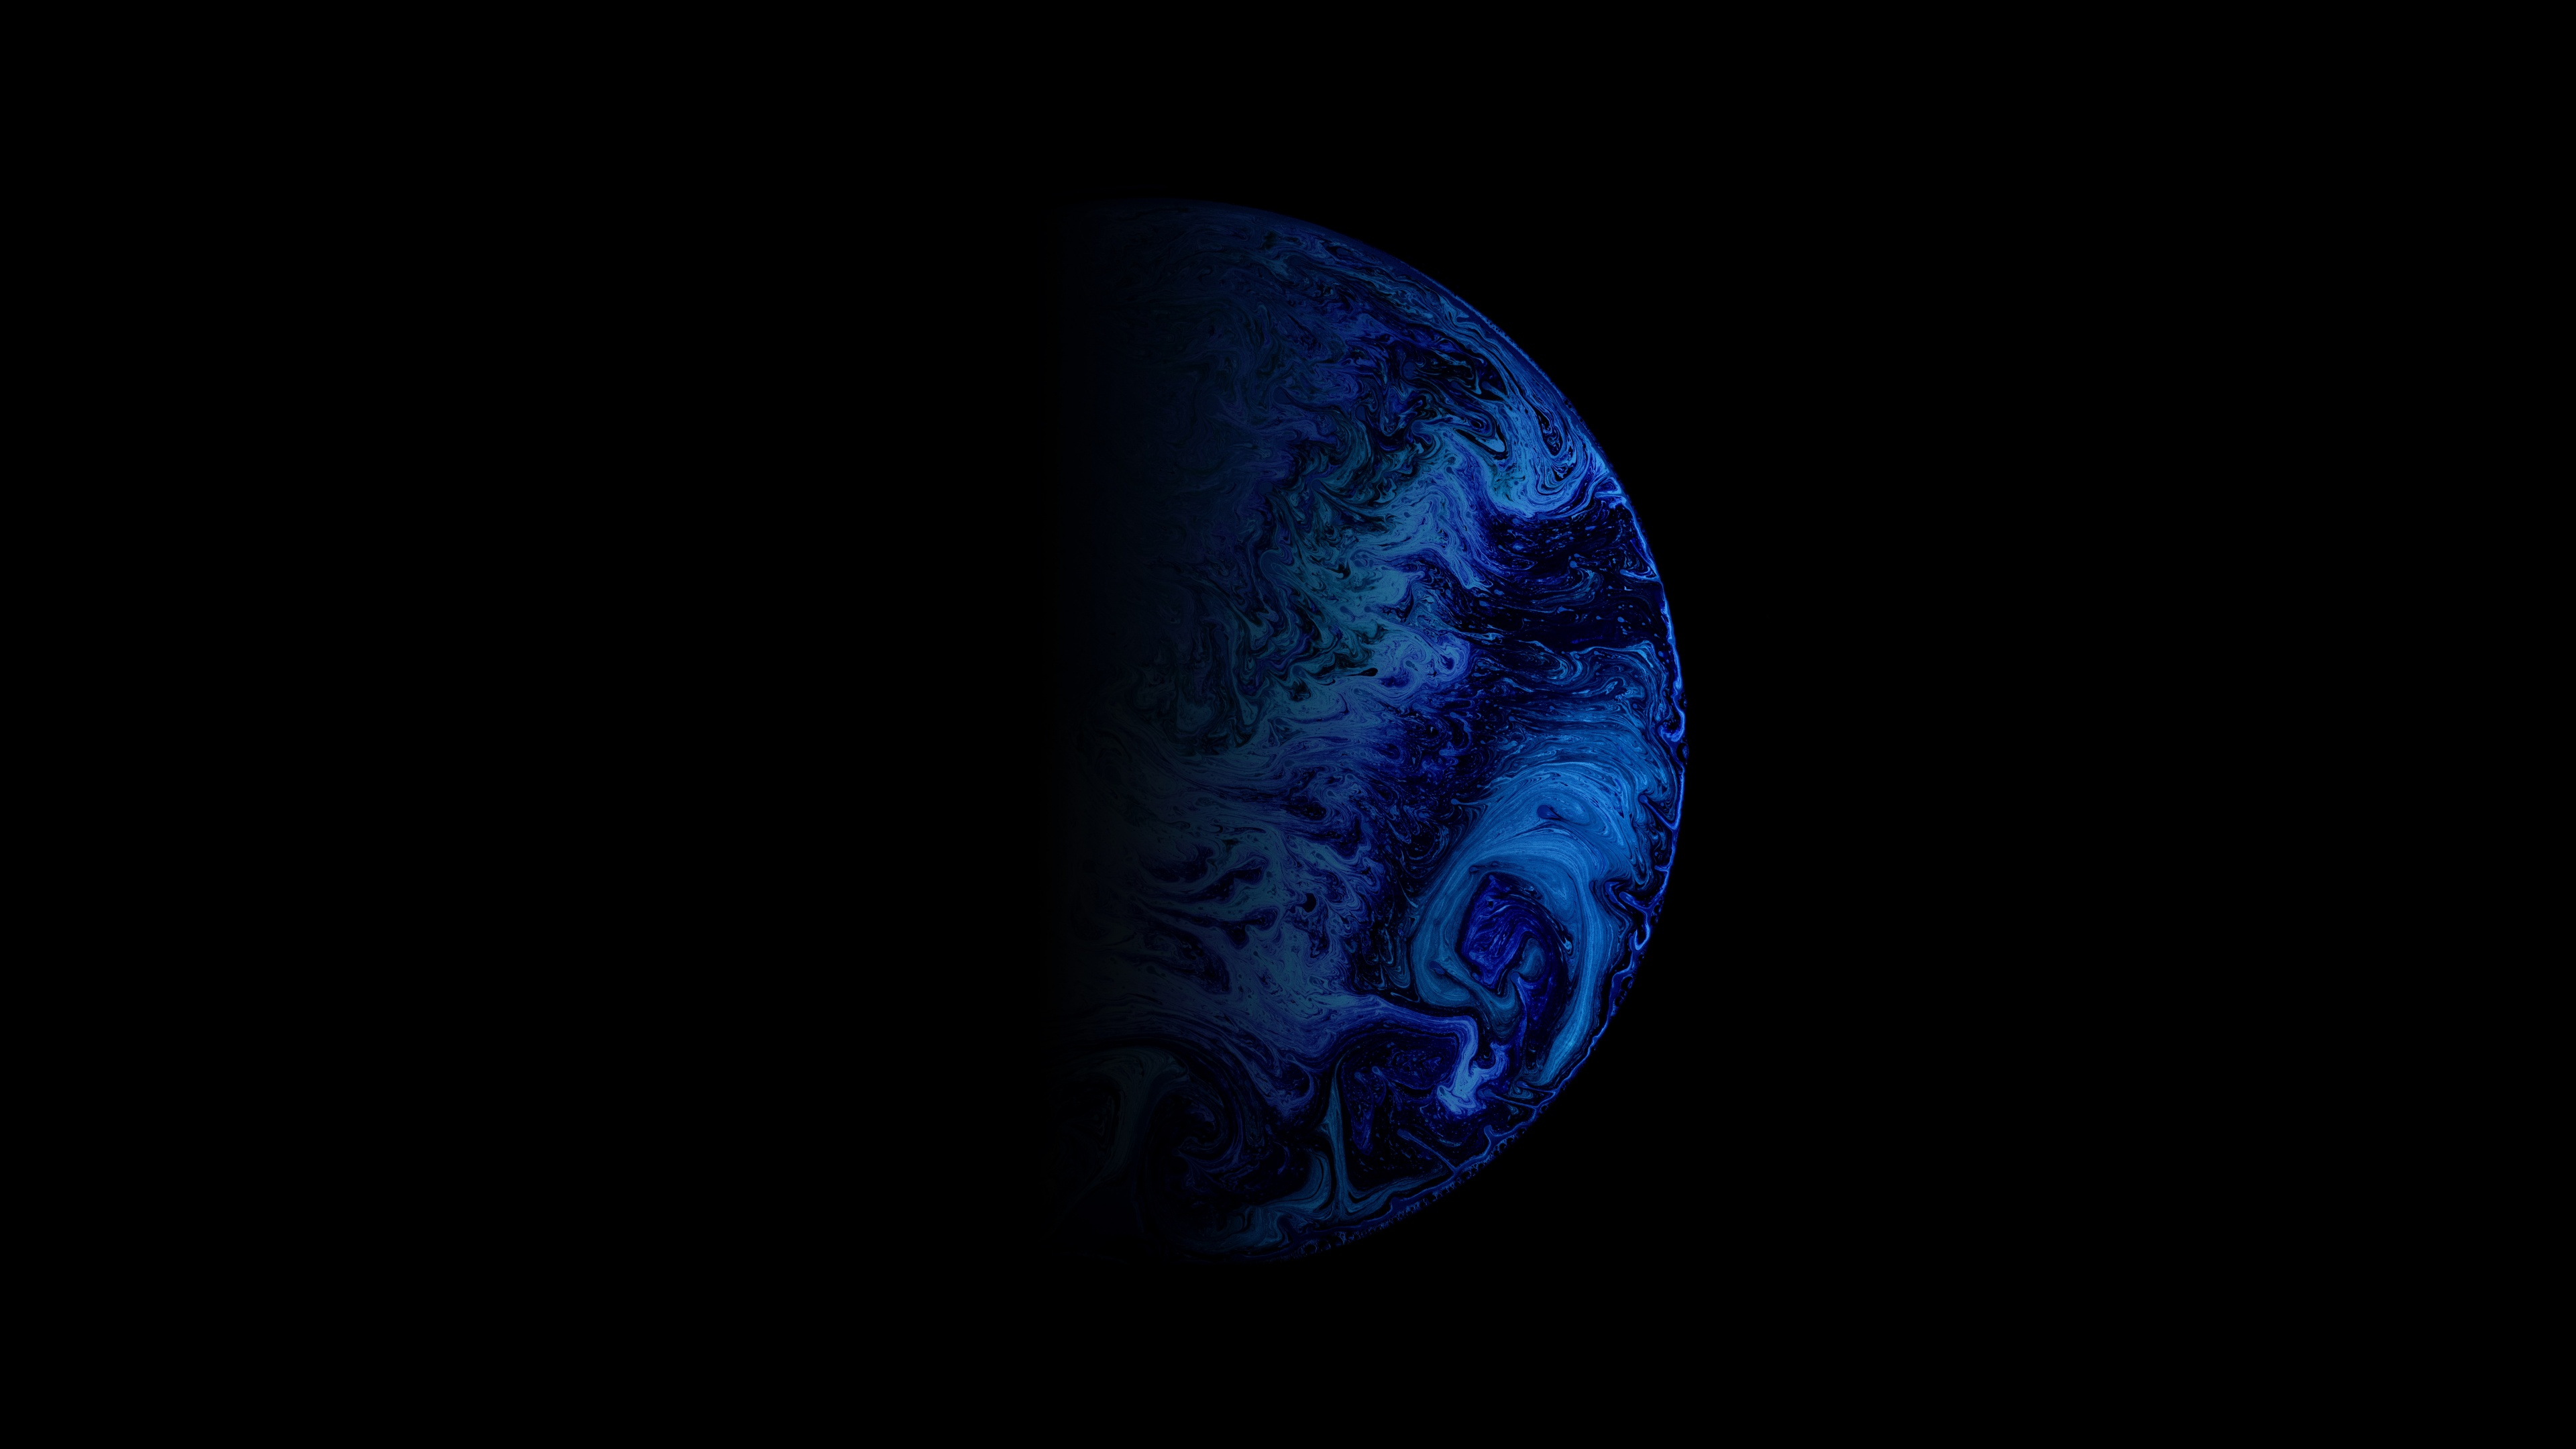 Planet 4k Wallpaper Astronomy Outer Space Blue Black Background 5k 8k Space 1515